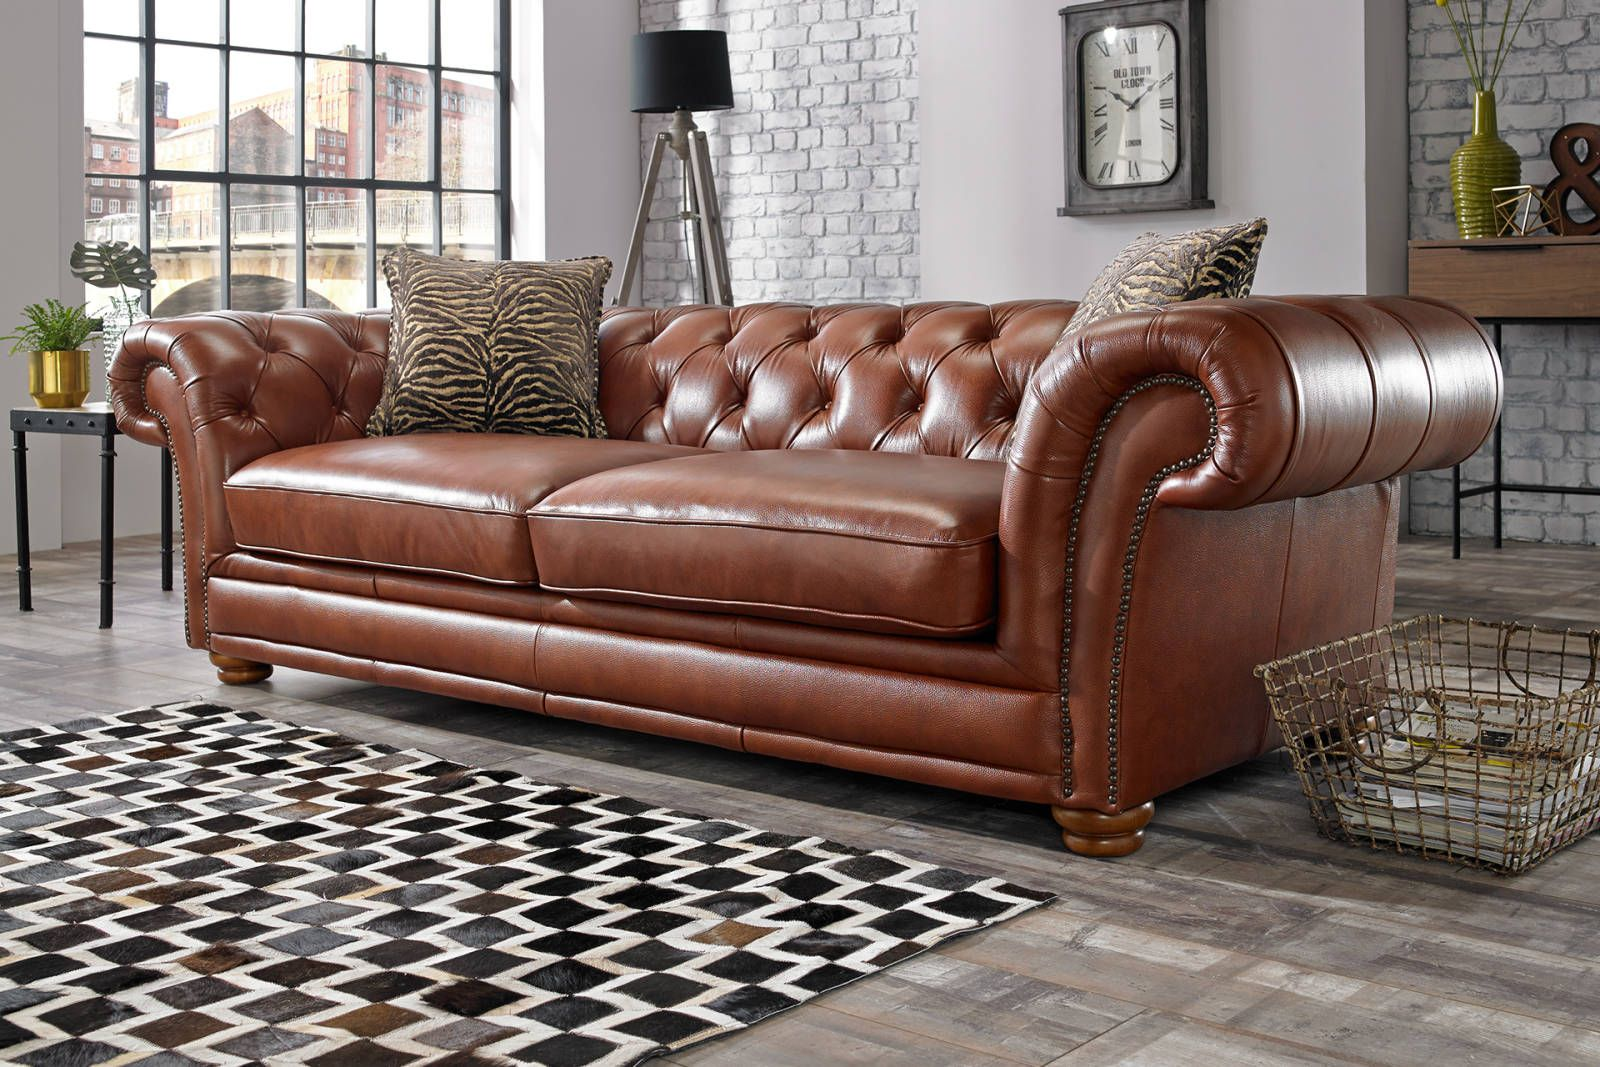 Pin By Gavin Robinson On Home Improvements Sofas Chair Leather Sofa